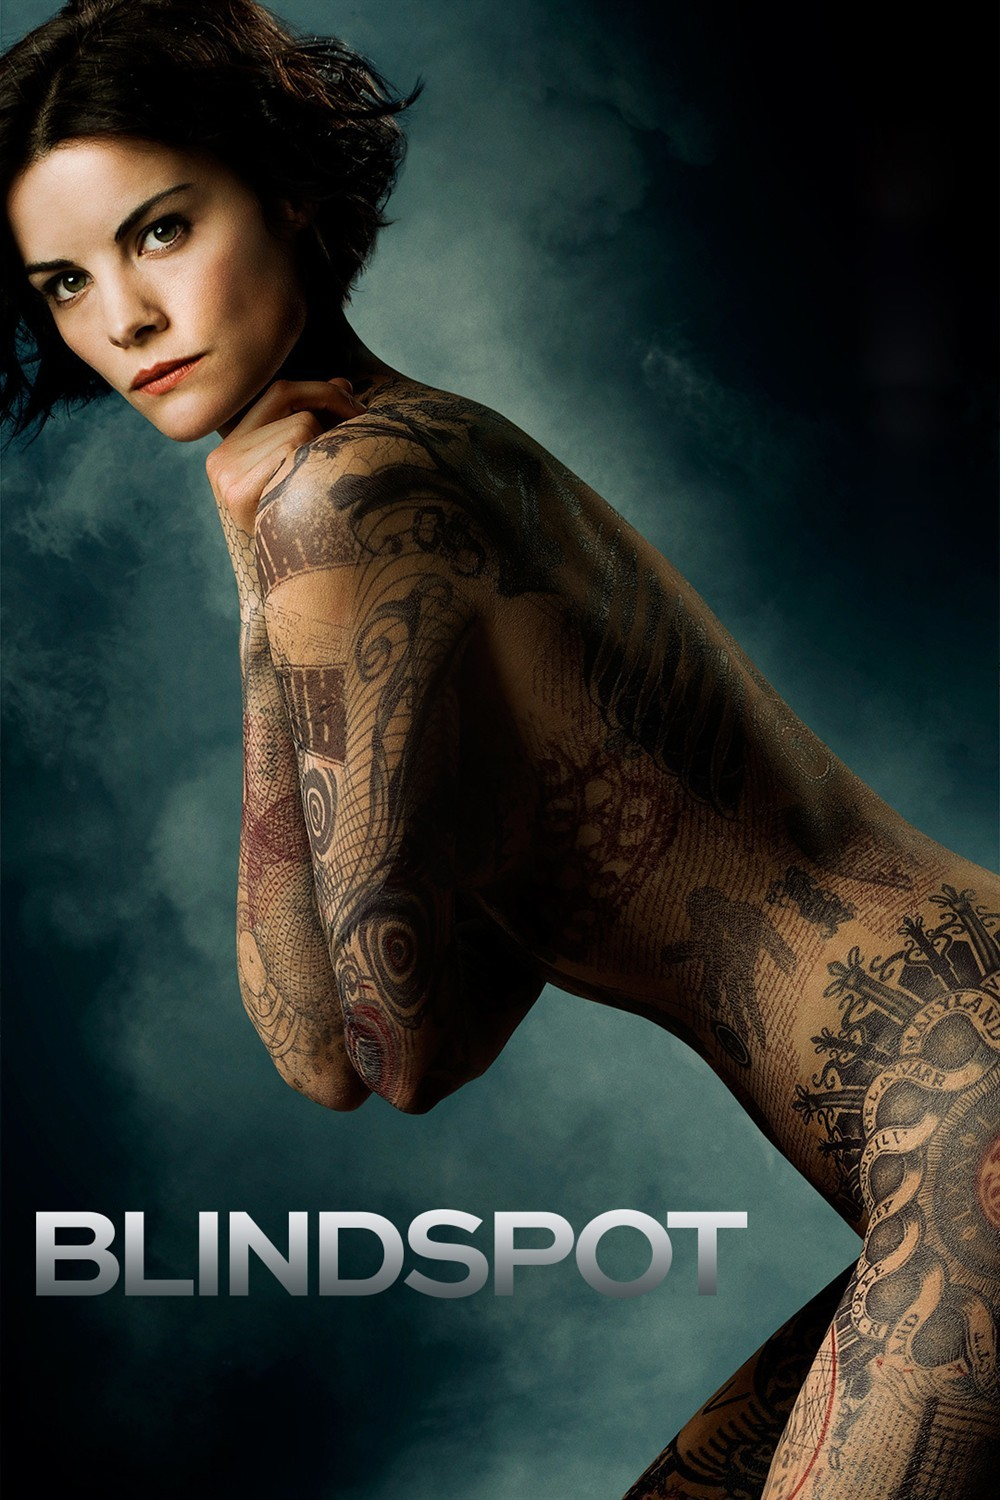 Blindspot.S03E10.1080p.WEB.x264-TBS - Torrent - DCRGDizi.com